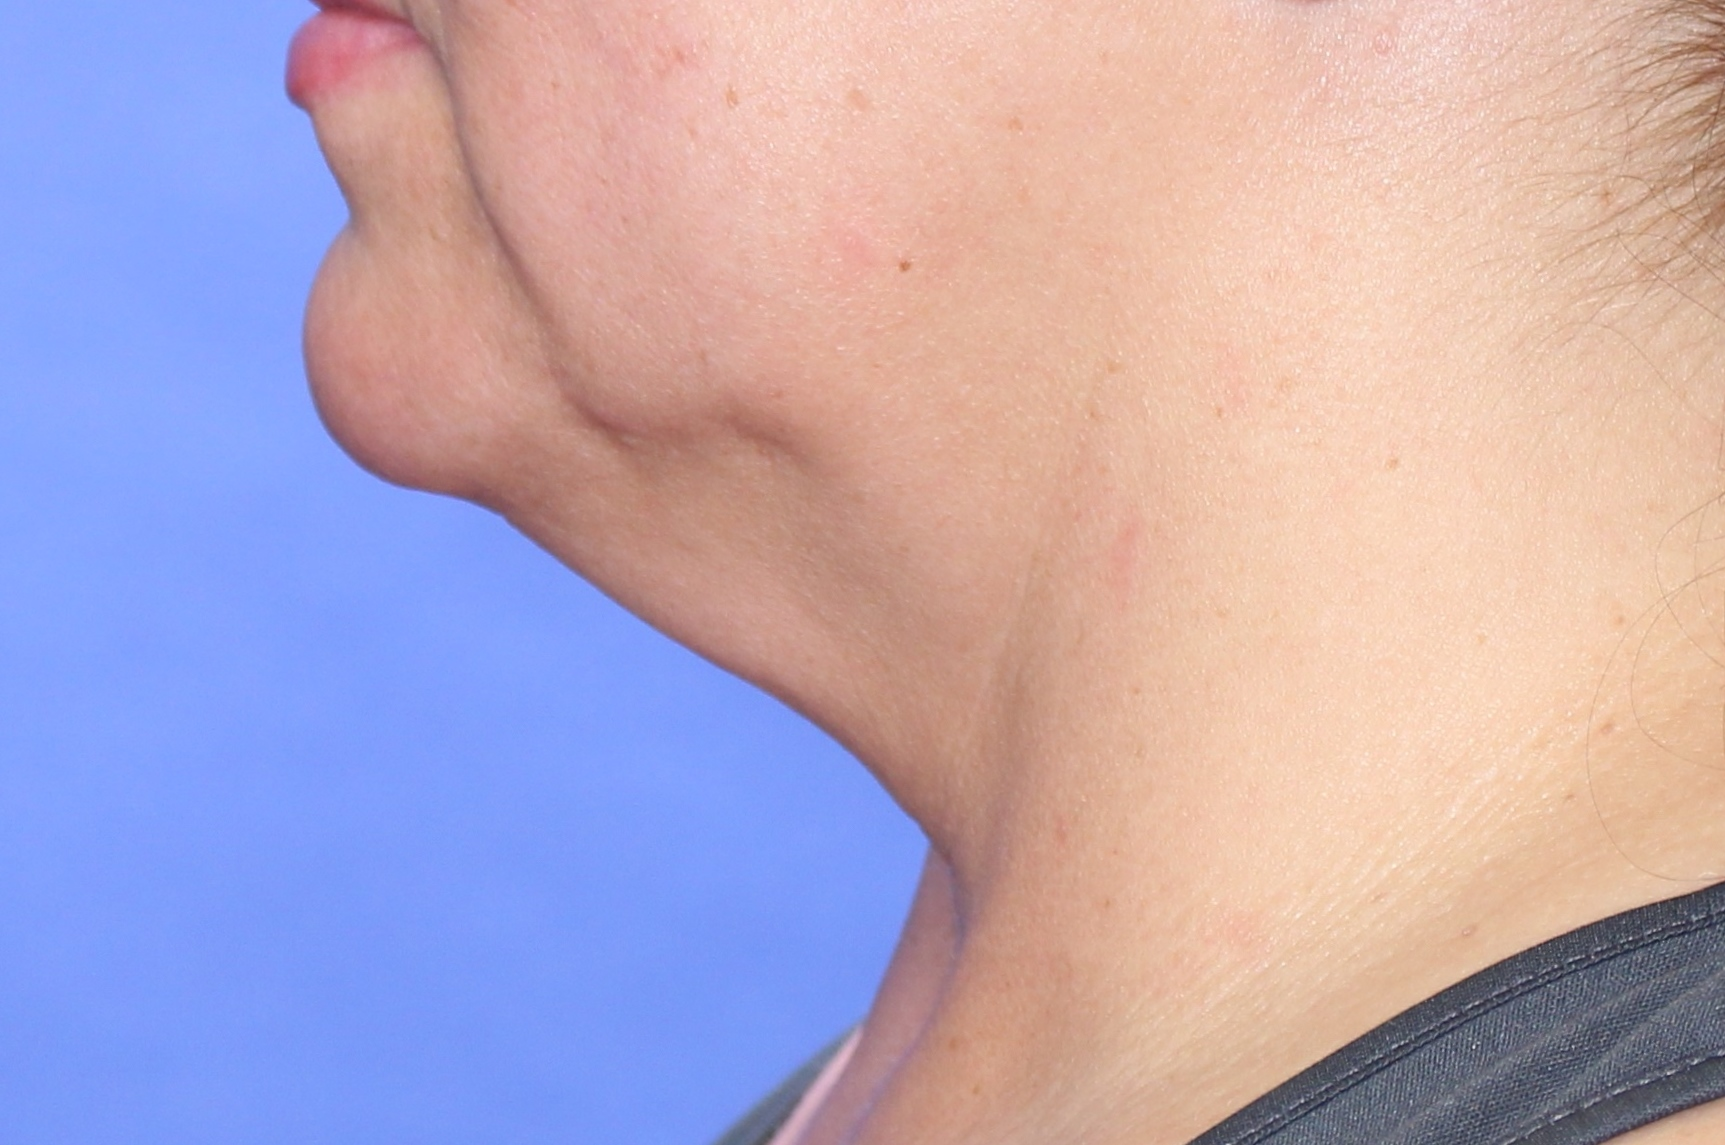 Necklift before image